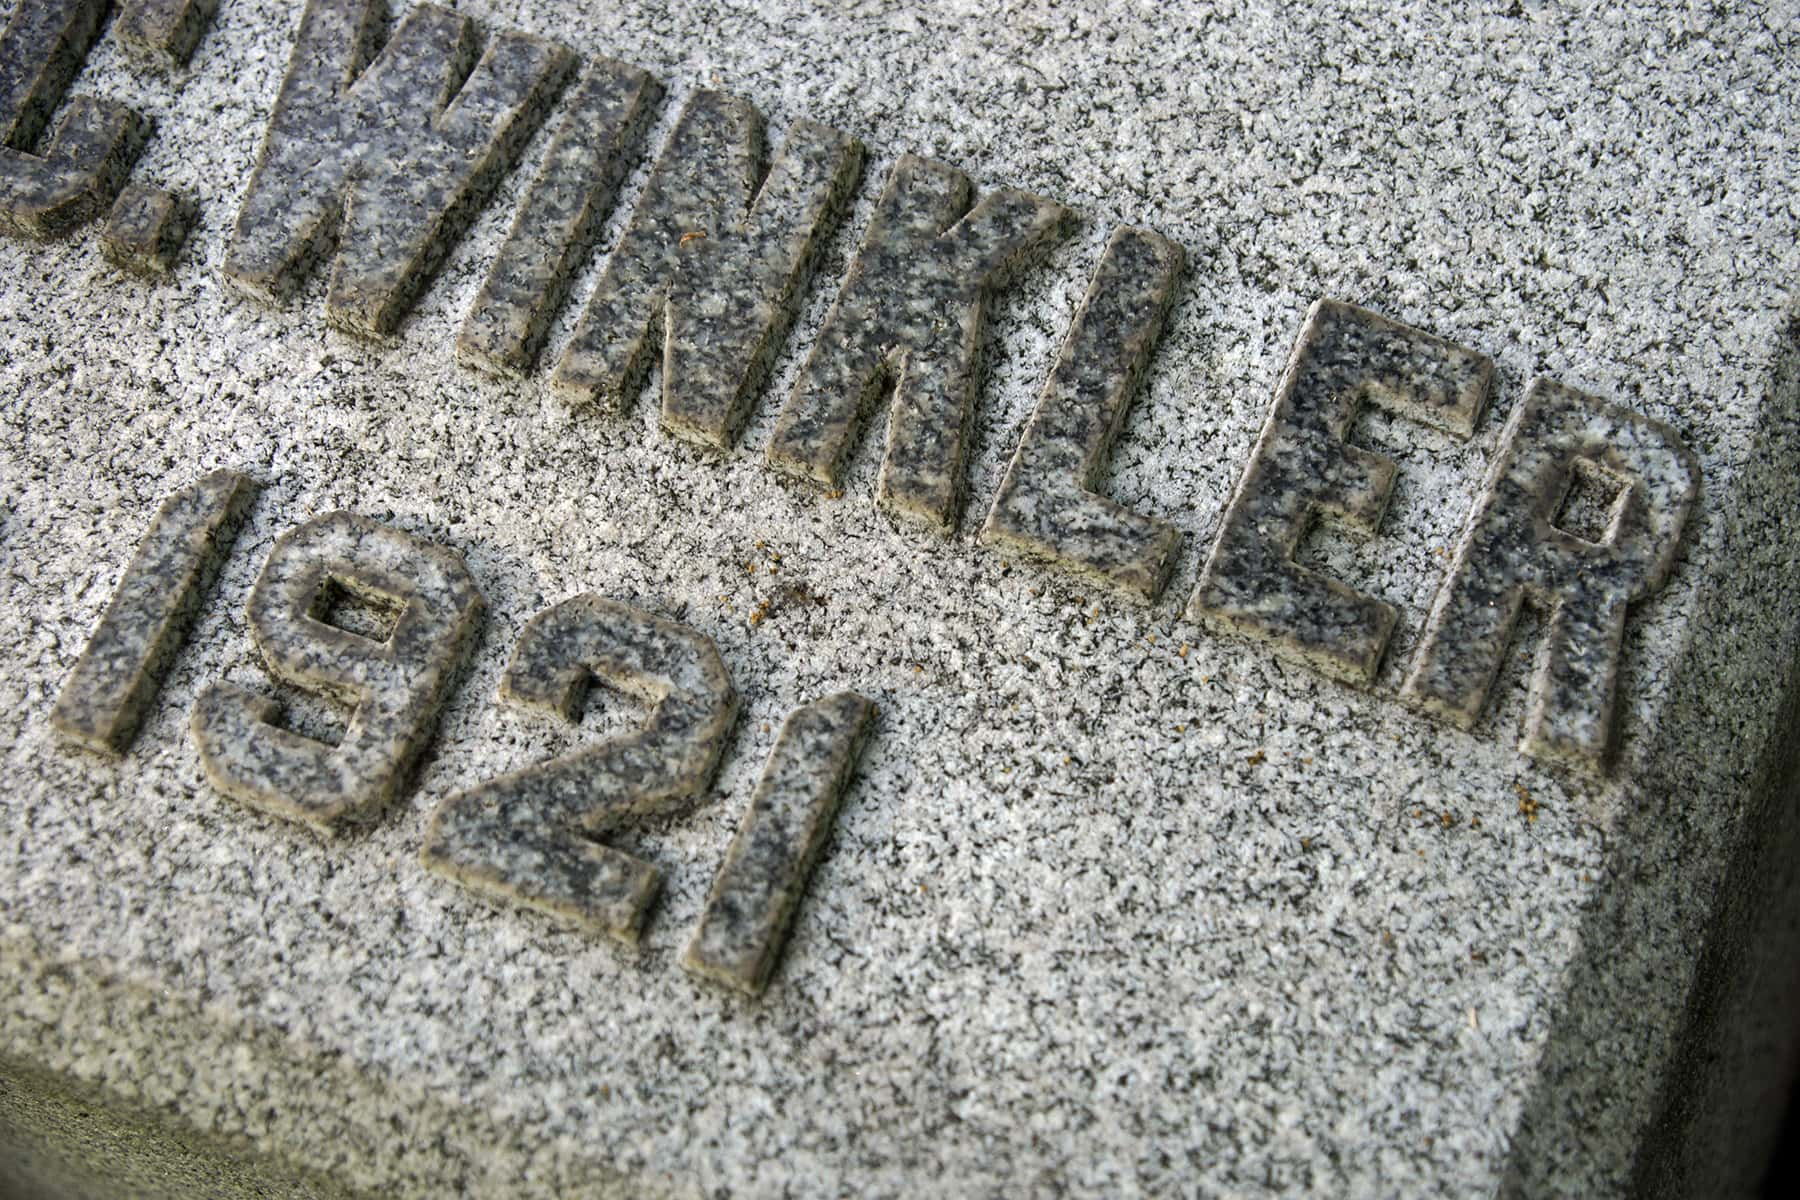 Frederick Charles Winkler: Milwaukee's Hero of Gettysburg | The